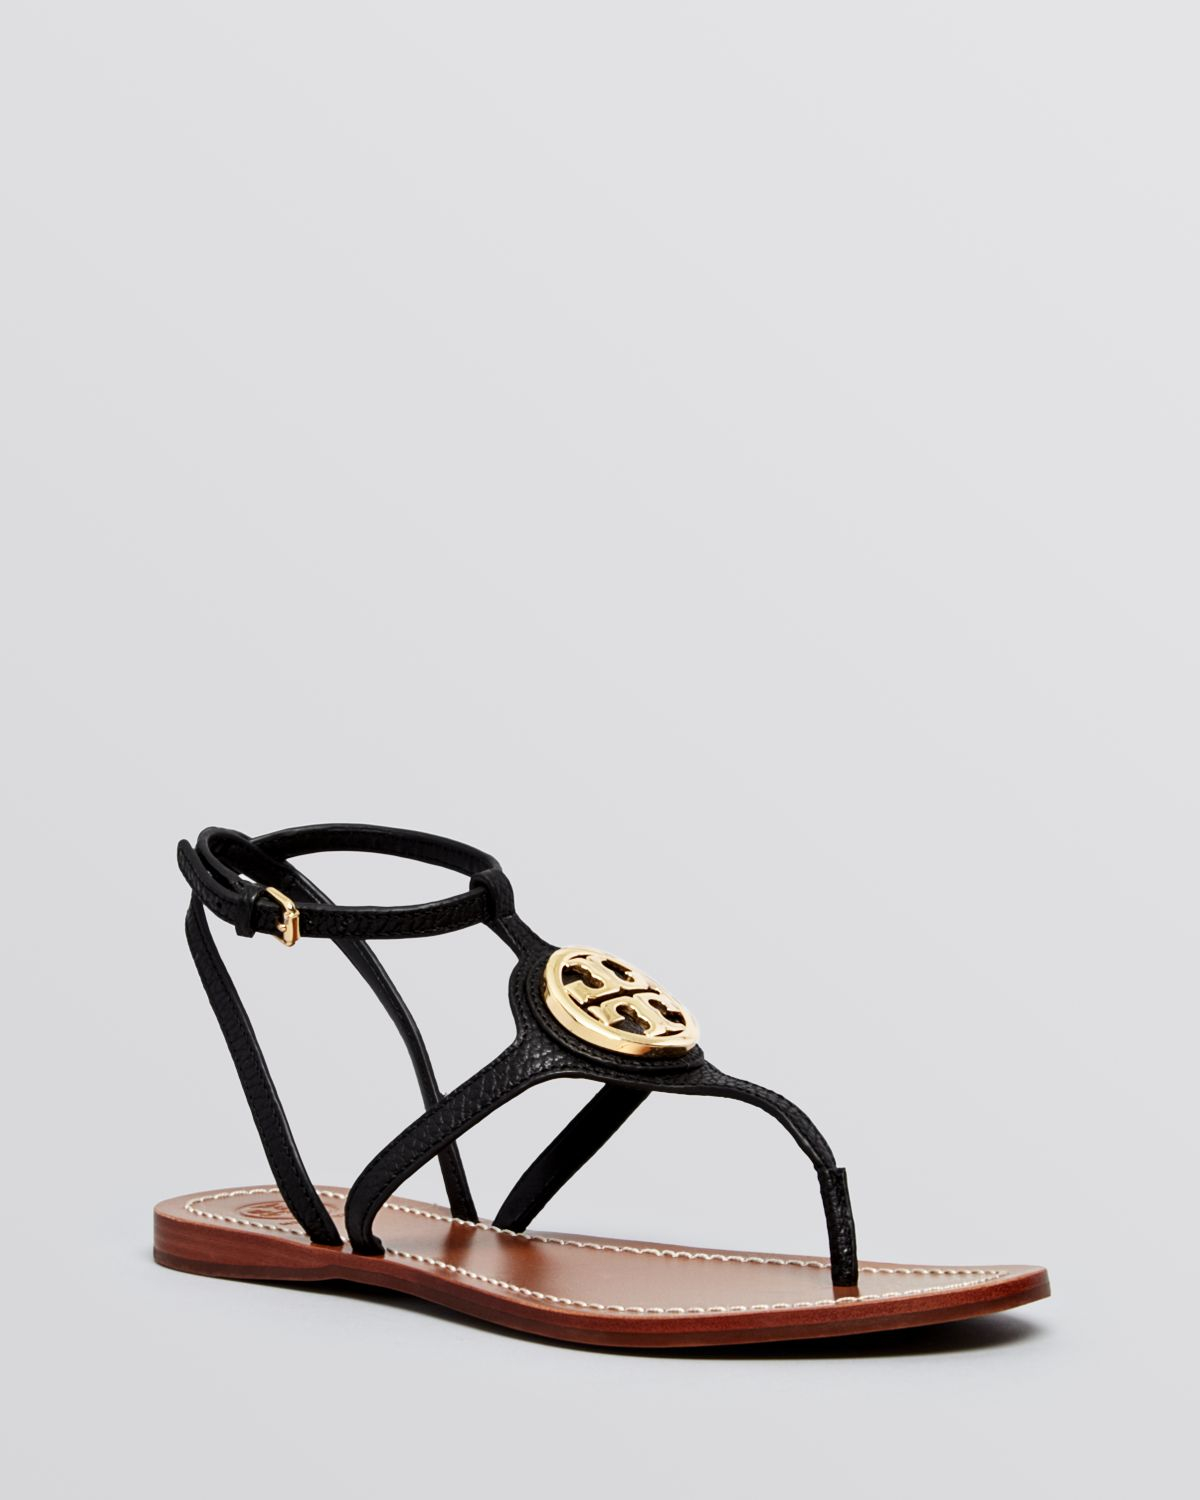 8d3fc0cf746 wholesale carson flat thong sandal womens view all toryburch.eu 8ce43  1b3eb  get lyst tory burch flat thong sandals leticia in black 30327 92a60